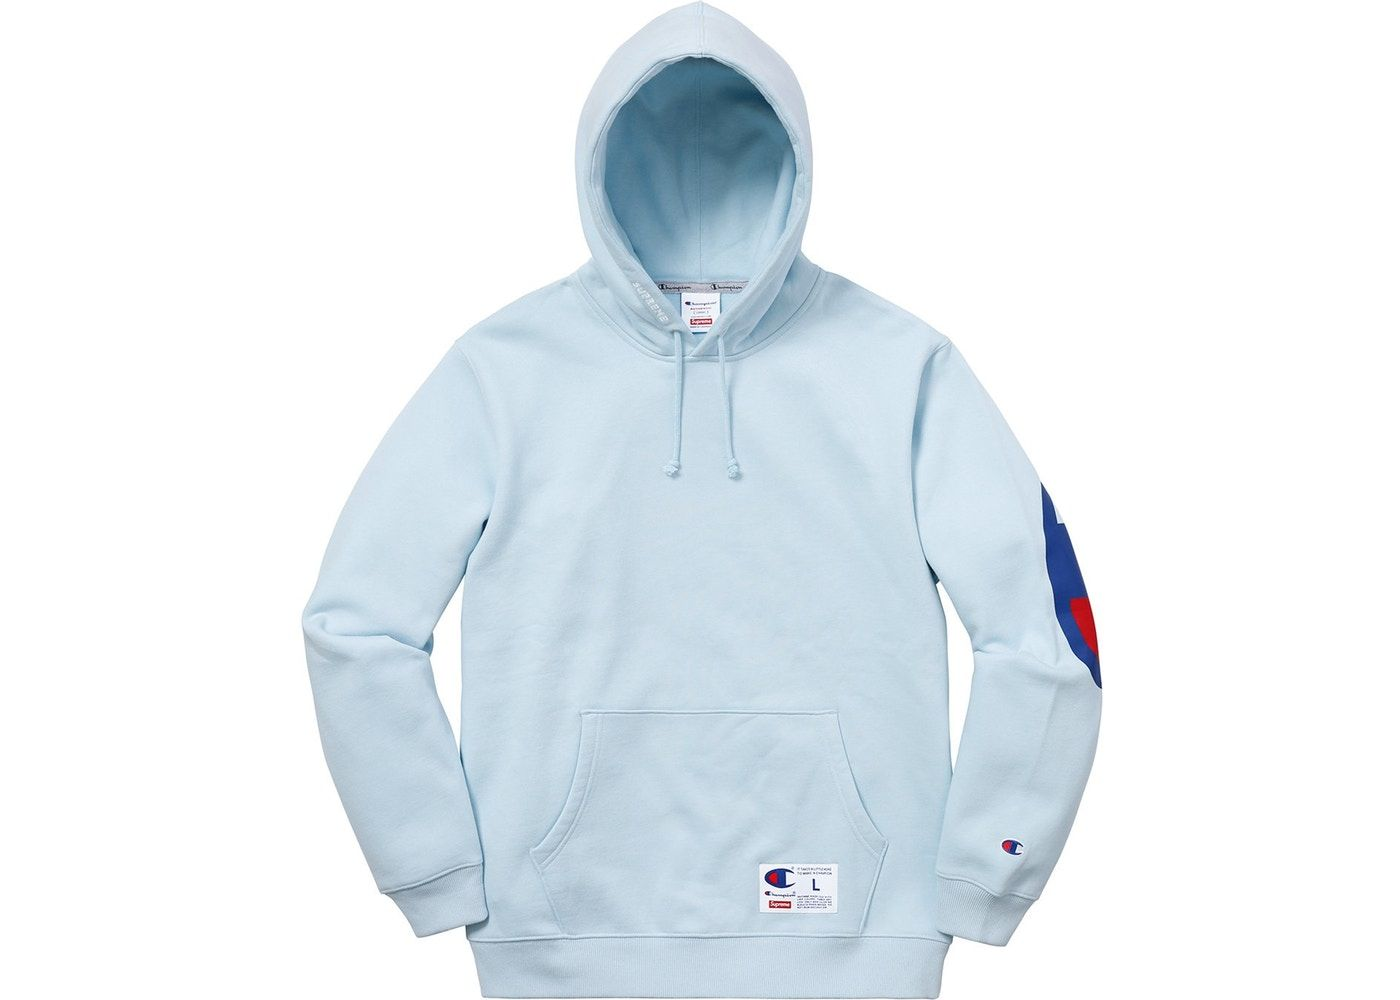 be6cb5a2 Check out the Supreme Champion Hooded Sweatshirt (SS18) Light Blue  available on StockX